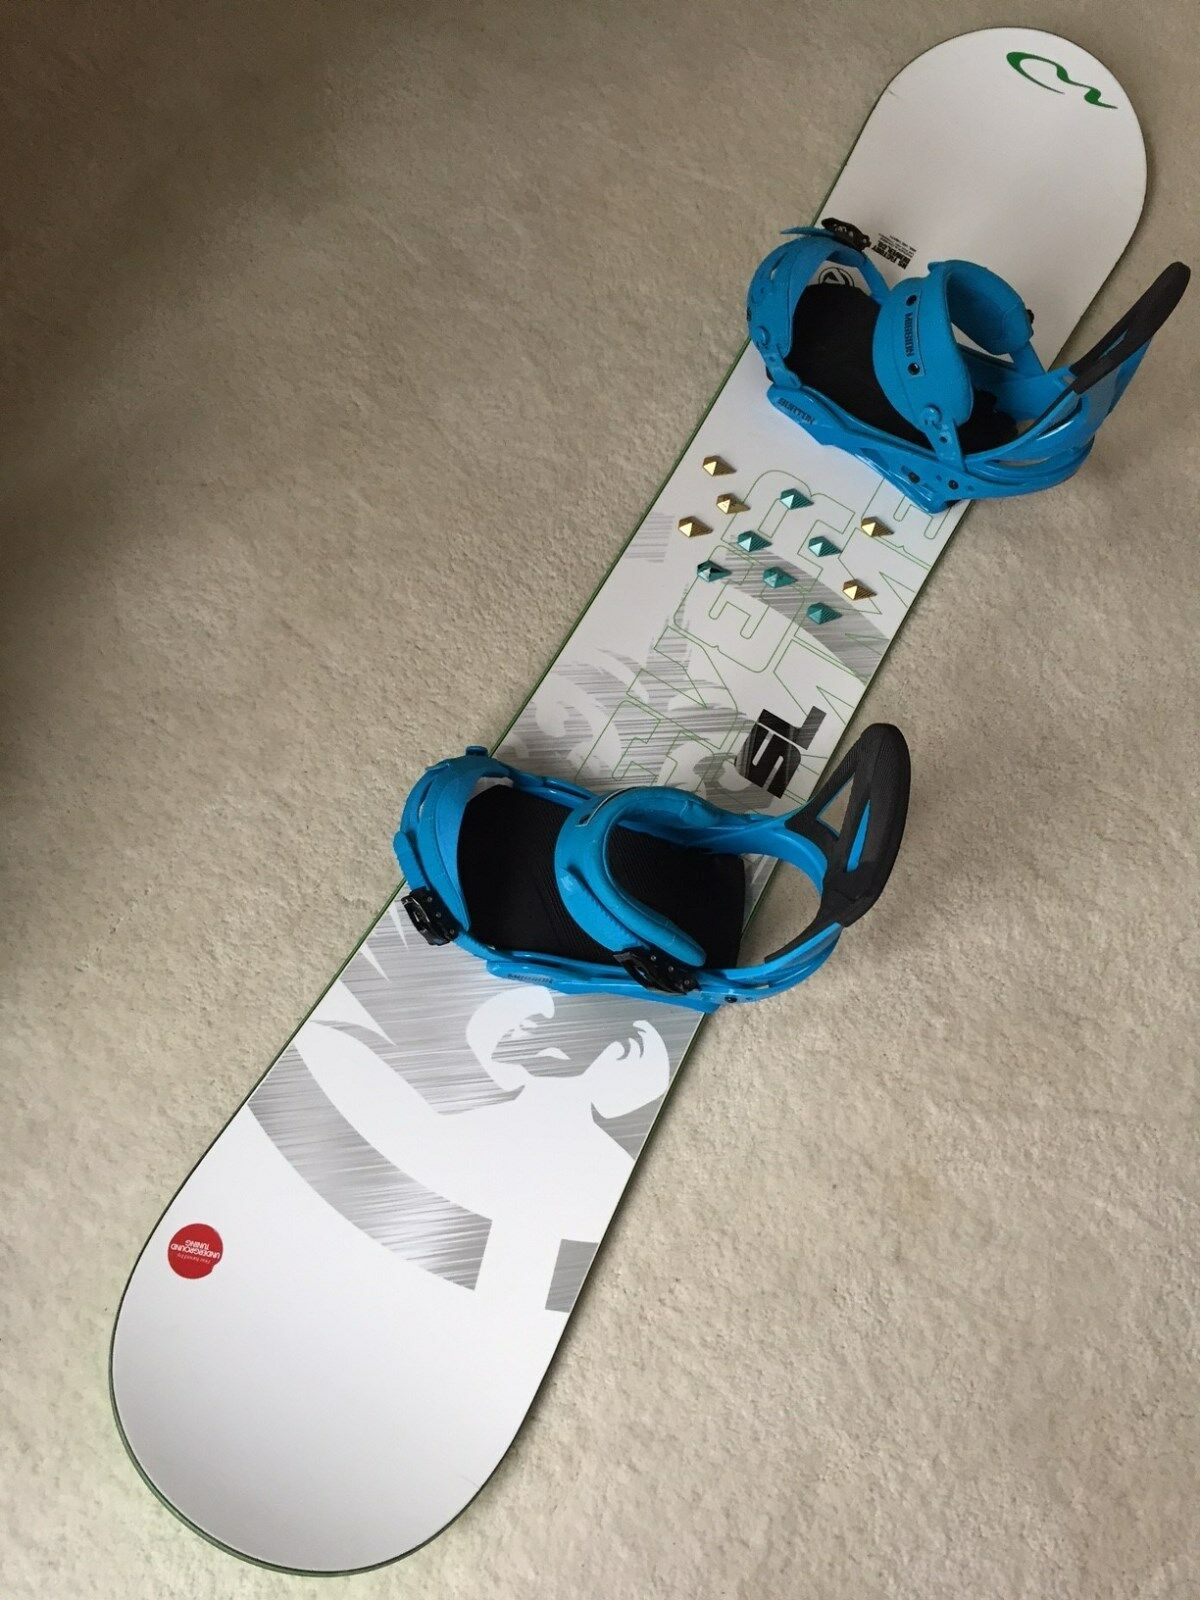 Never Summer SL 158cm Snowboard, Burton Mission Bindings